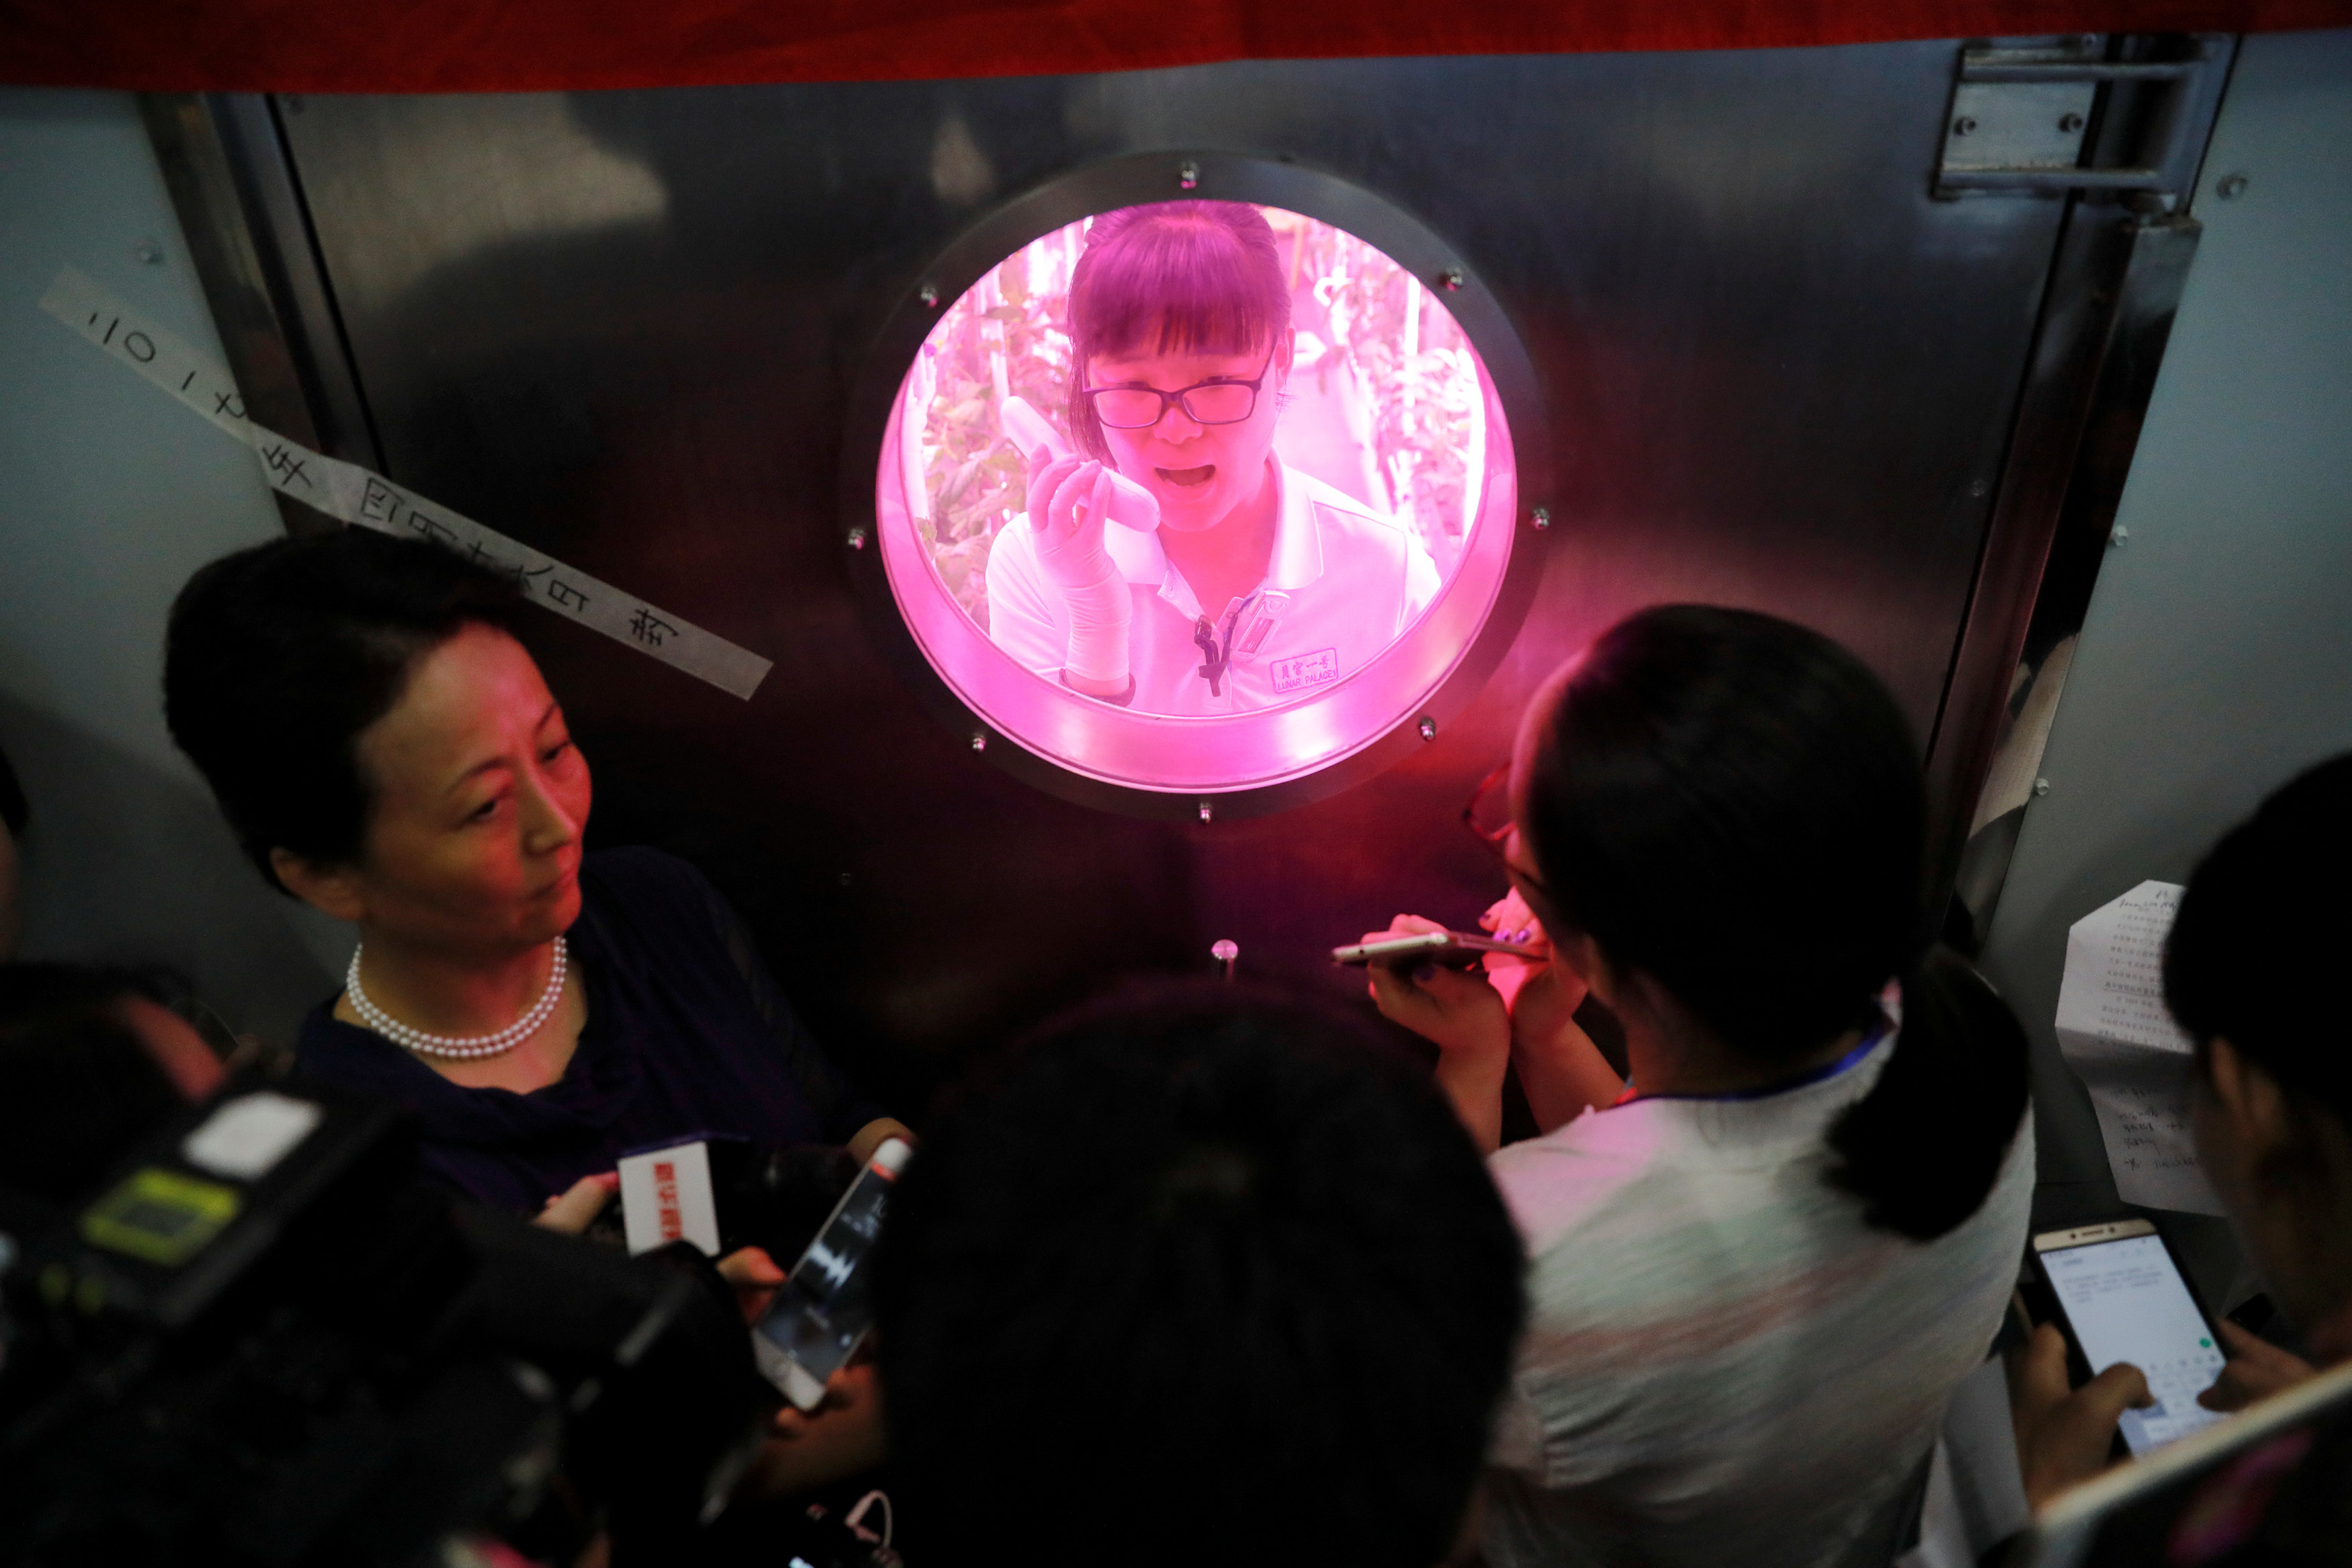 A volunteer answers reporters' questions from inside a simulated space cabin in which she temporarily lives with others as a part of the scientistic Lunar Palace 365 Project, at Beihang University in Beijing, China